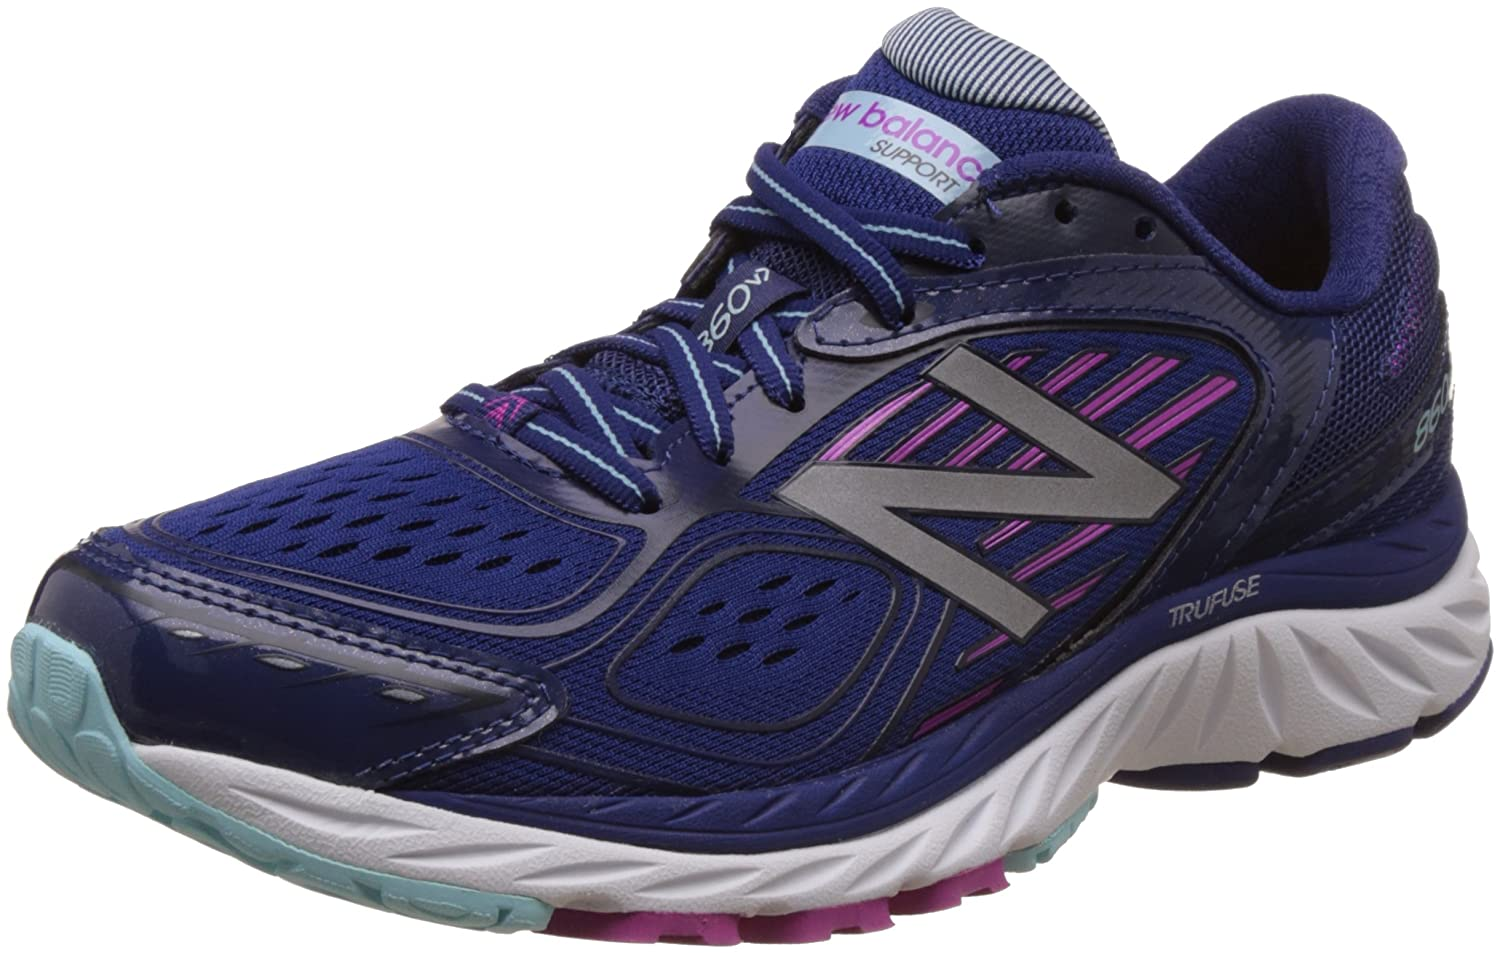 New Balance Women's W860bp7 B01M1D1AXR 5 D US|Blue/Purpl